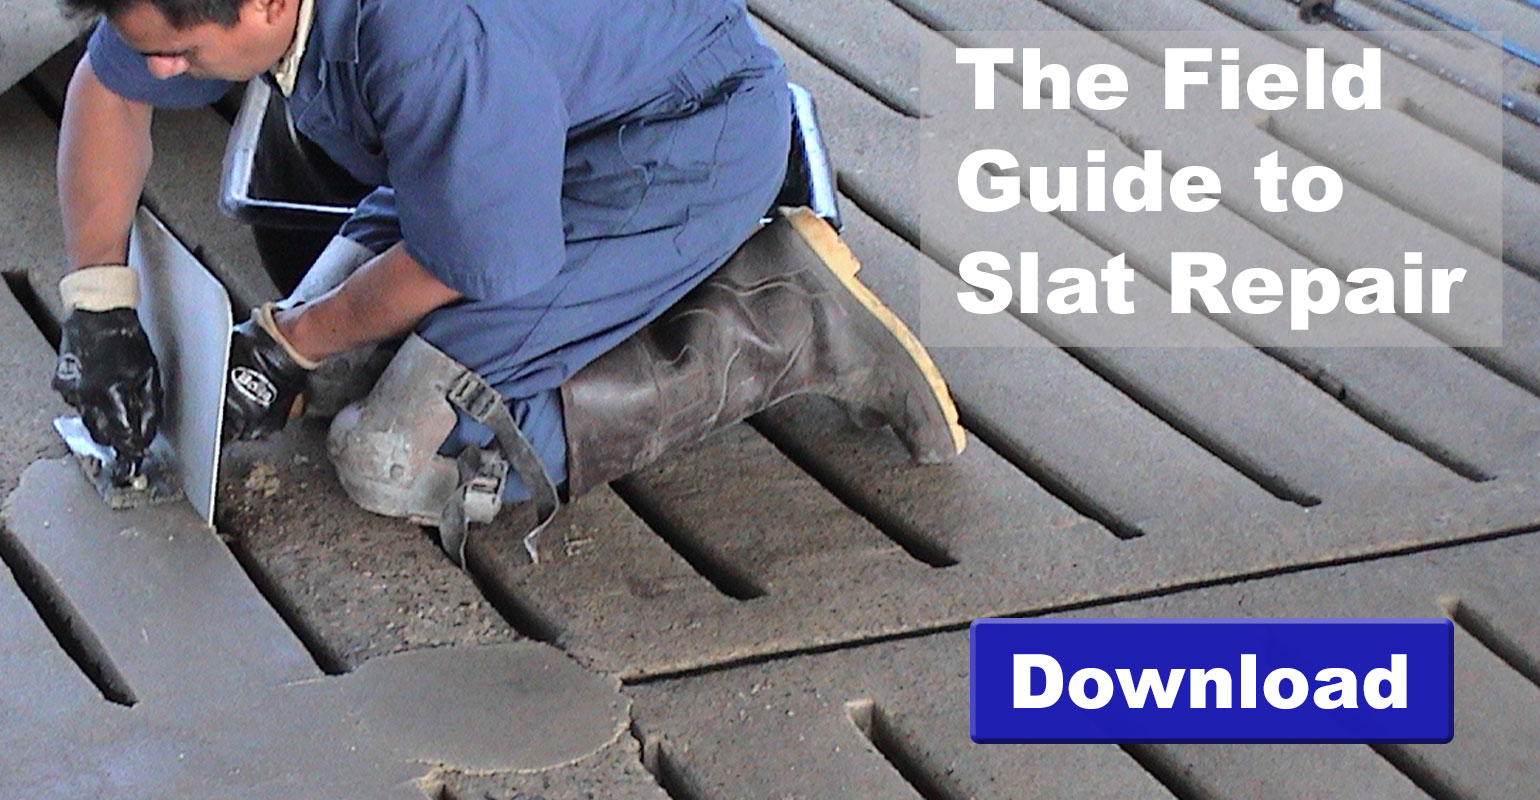 slat repair guide